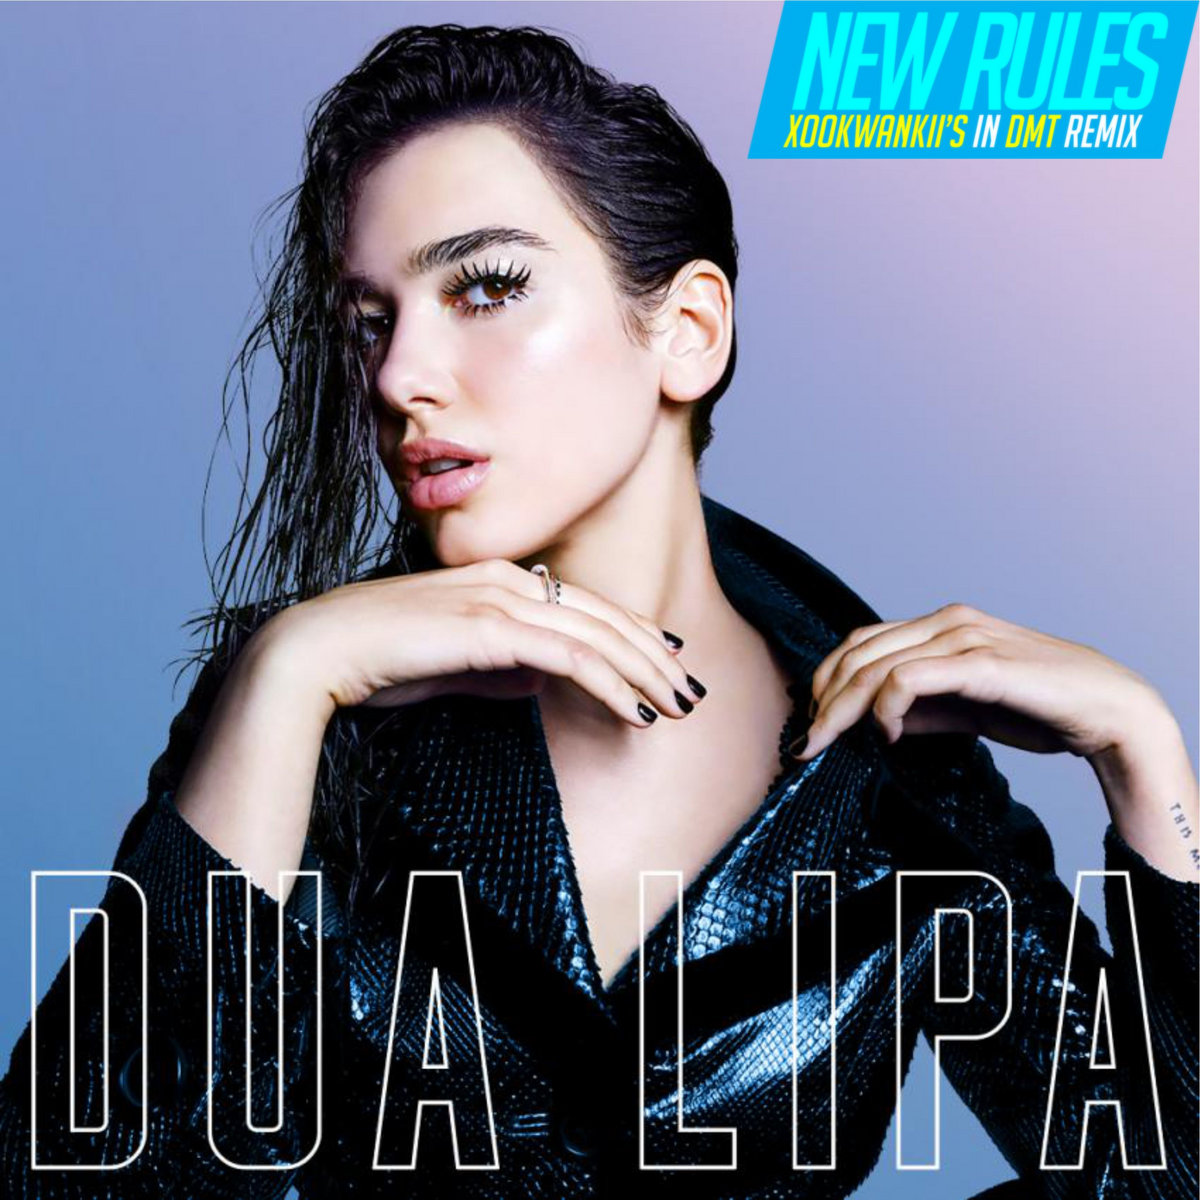 Dua lipa new rules xookwankiis in dmt remix xookwankii by xookwankii stopboris